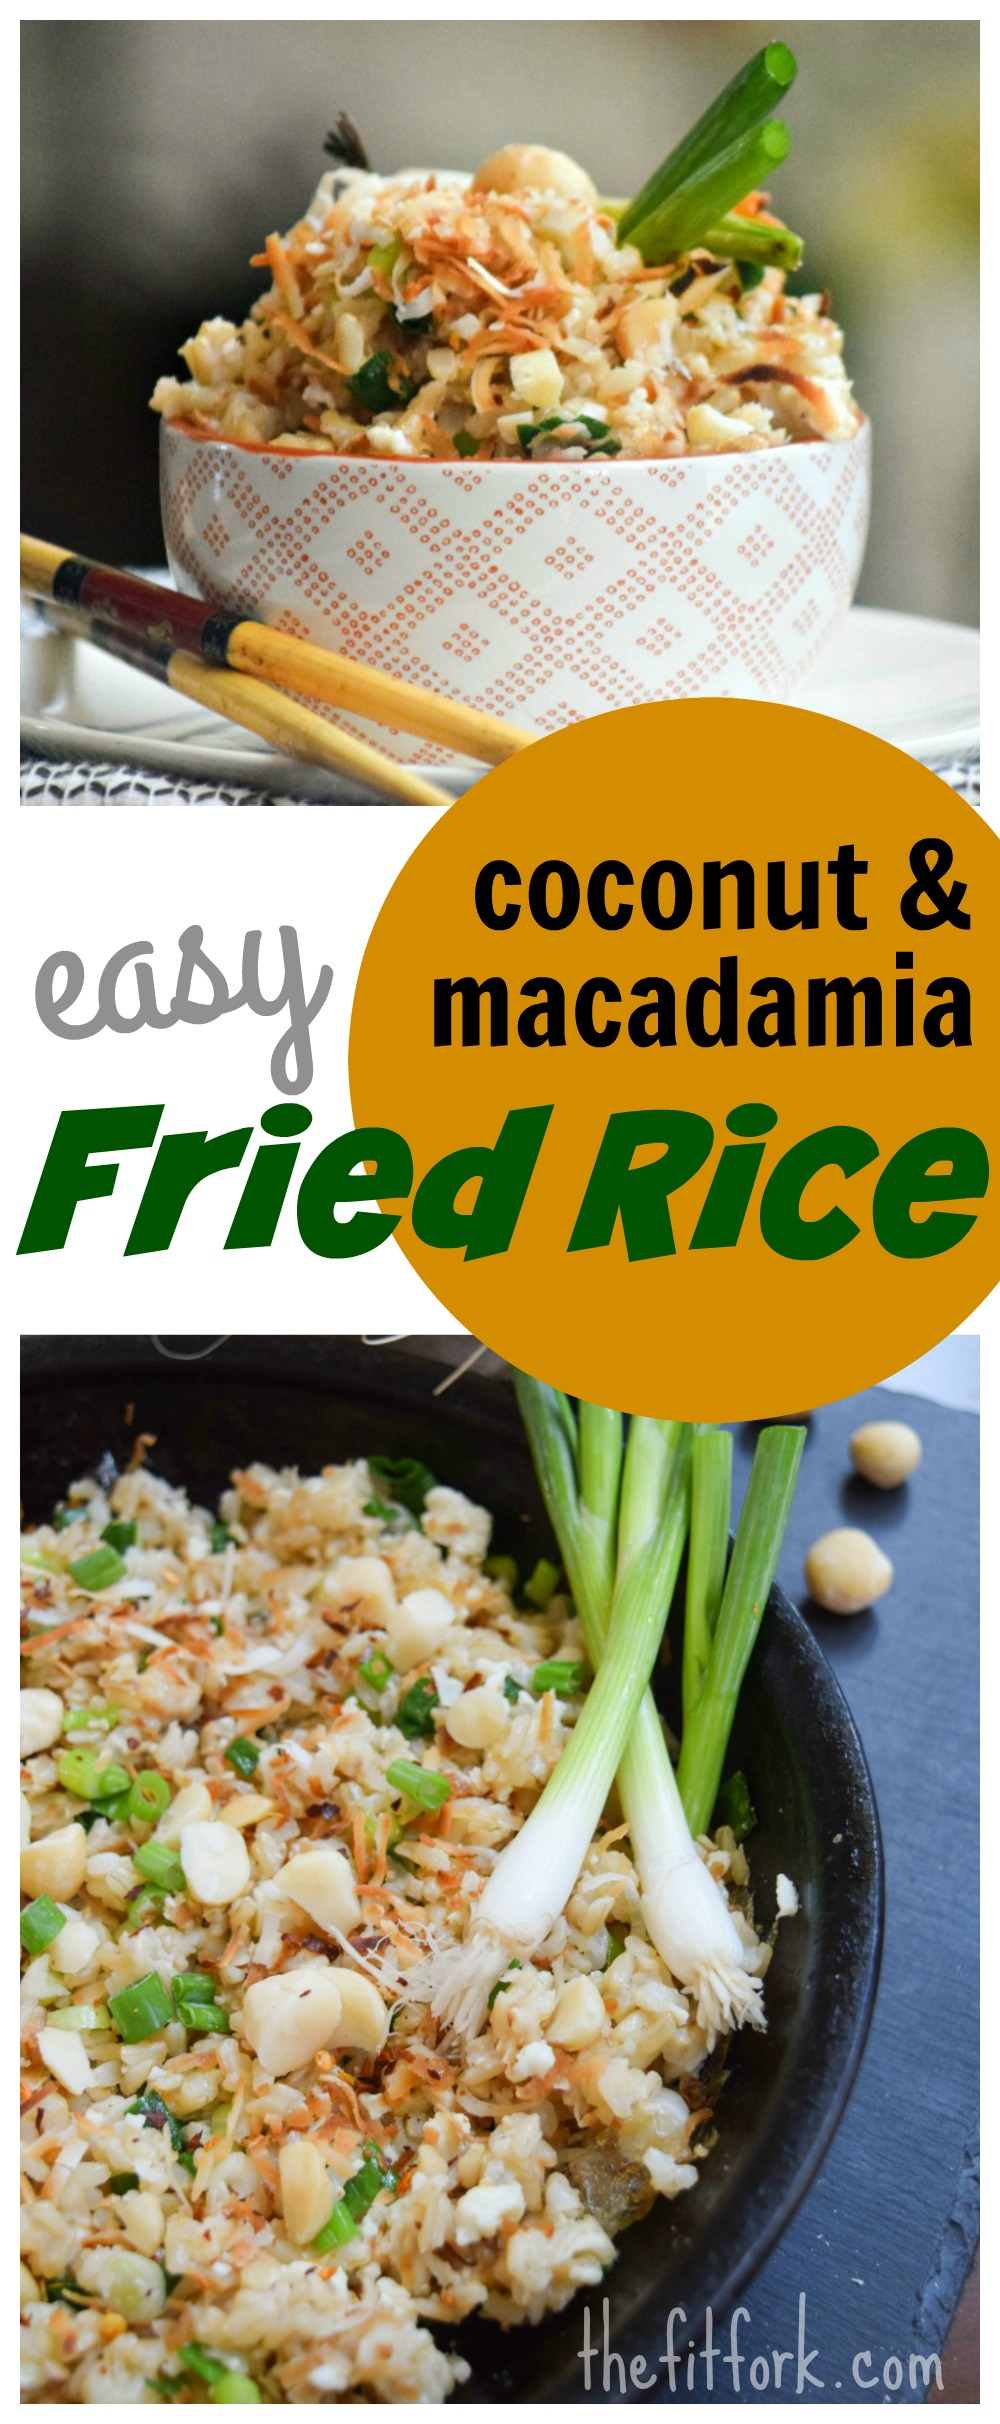 Coconut macadamia fried rice recipe musthavebox thefitfork easy coconut and macadamia fried rice is a island inspired side dish or vegetarian meal ccuart Image collections